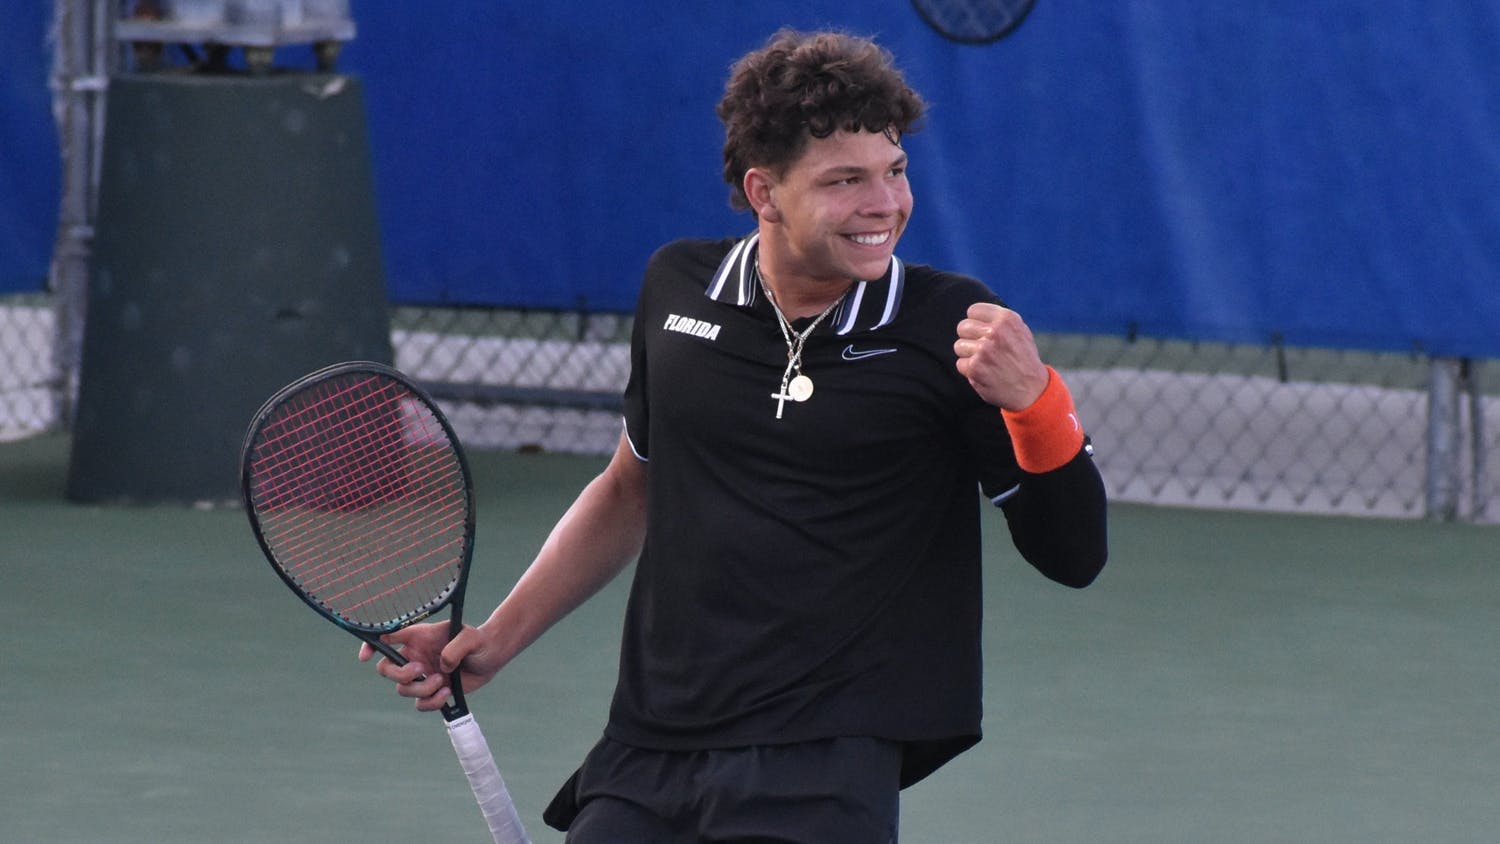 Ben Shelton celebrates during a match against Texas Christian University March 27.